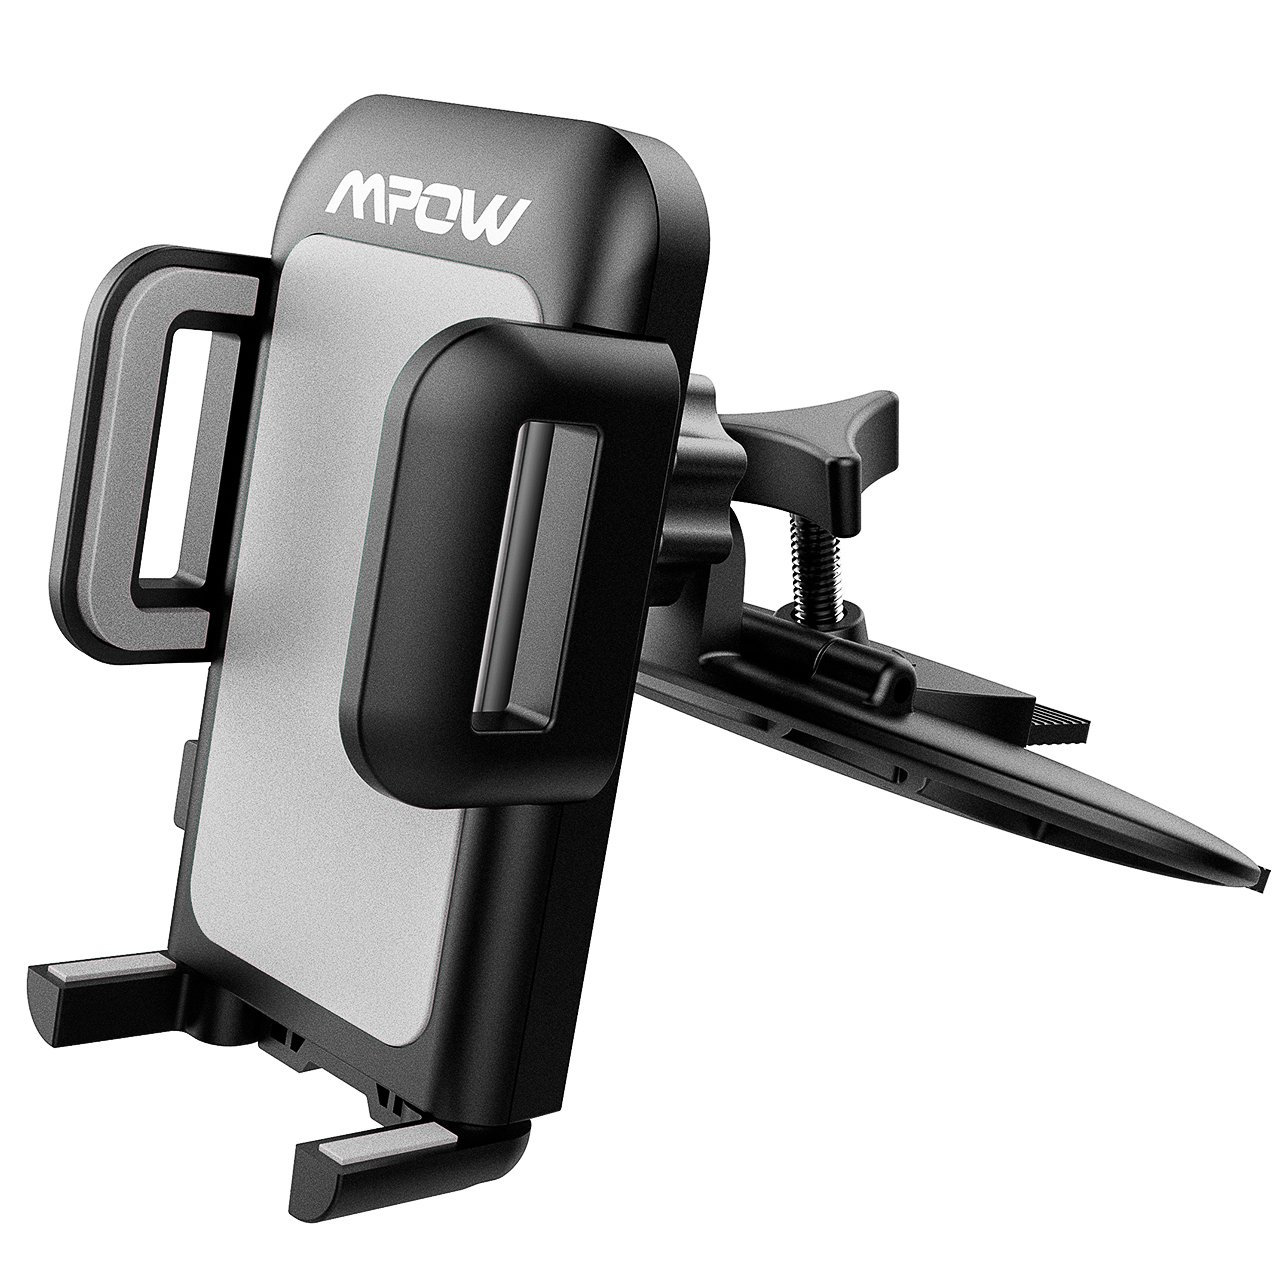 Mpow Car Phone Mount,CD Slot Car Phone Holder Universal Car Cradle Mount with Three-Side Grips and One-Touch Design for iPhone X/8/8Plus/7/7Plus/6s/6P/5S, Galaxy S5/S6/S7/S8, Google, LG, Huawei etc